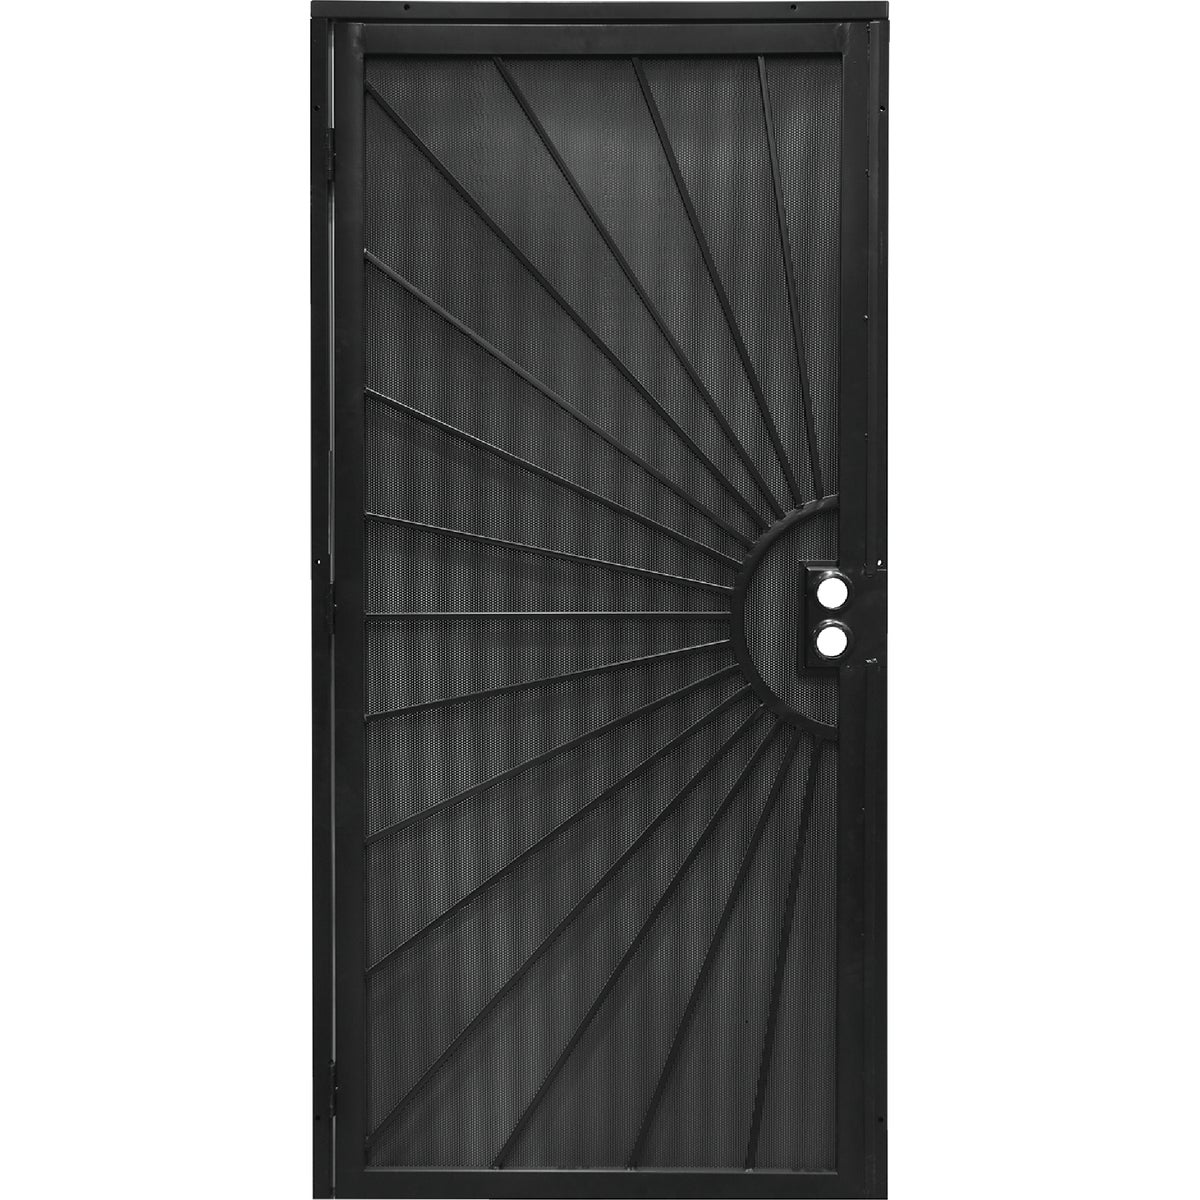 Item 160433, Steel security door powder coated with matching 24-gauge perforated steel mesh for added security.